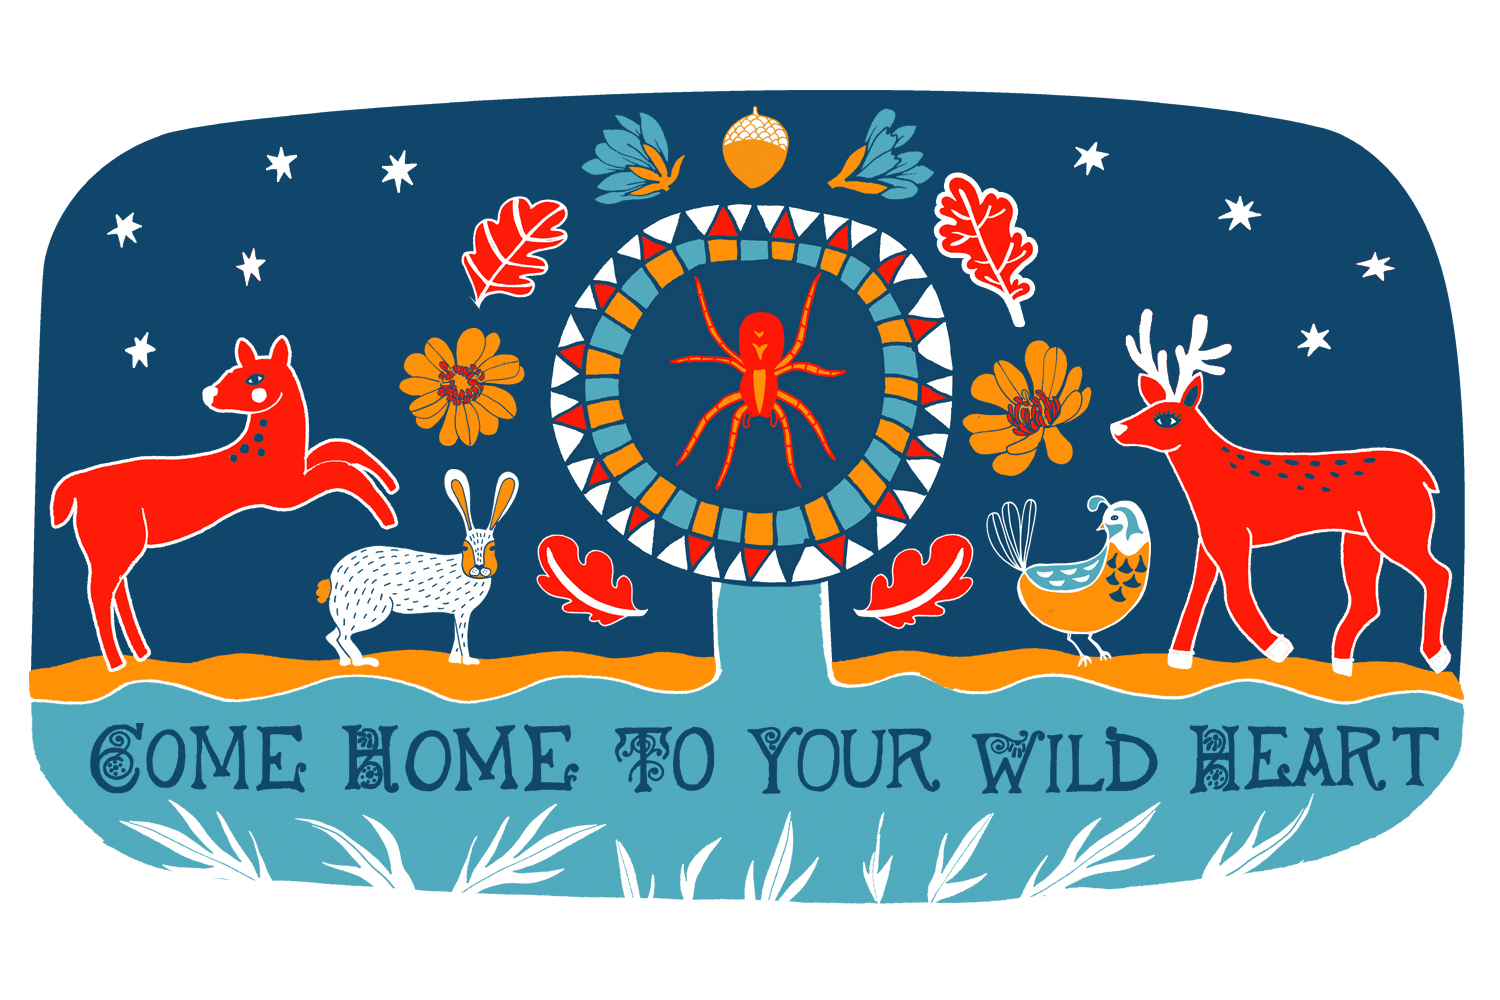 Come Home to your Wild Heart